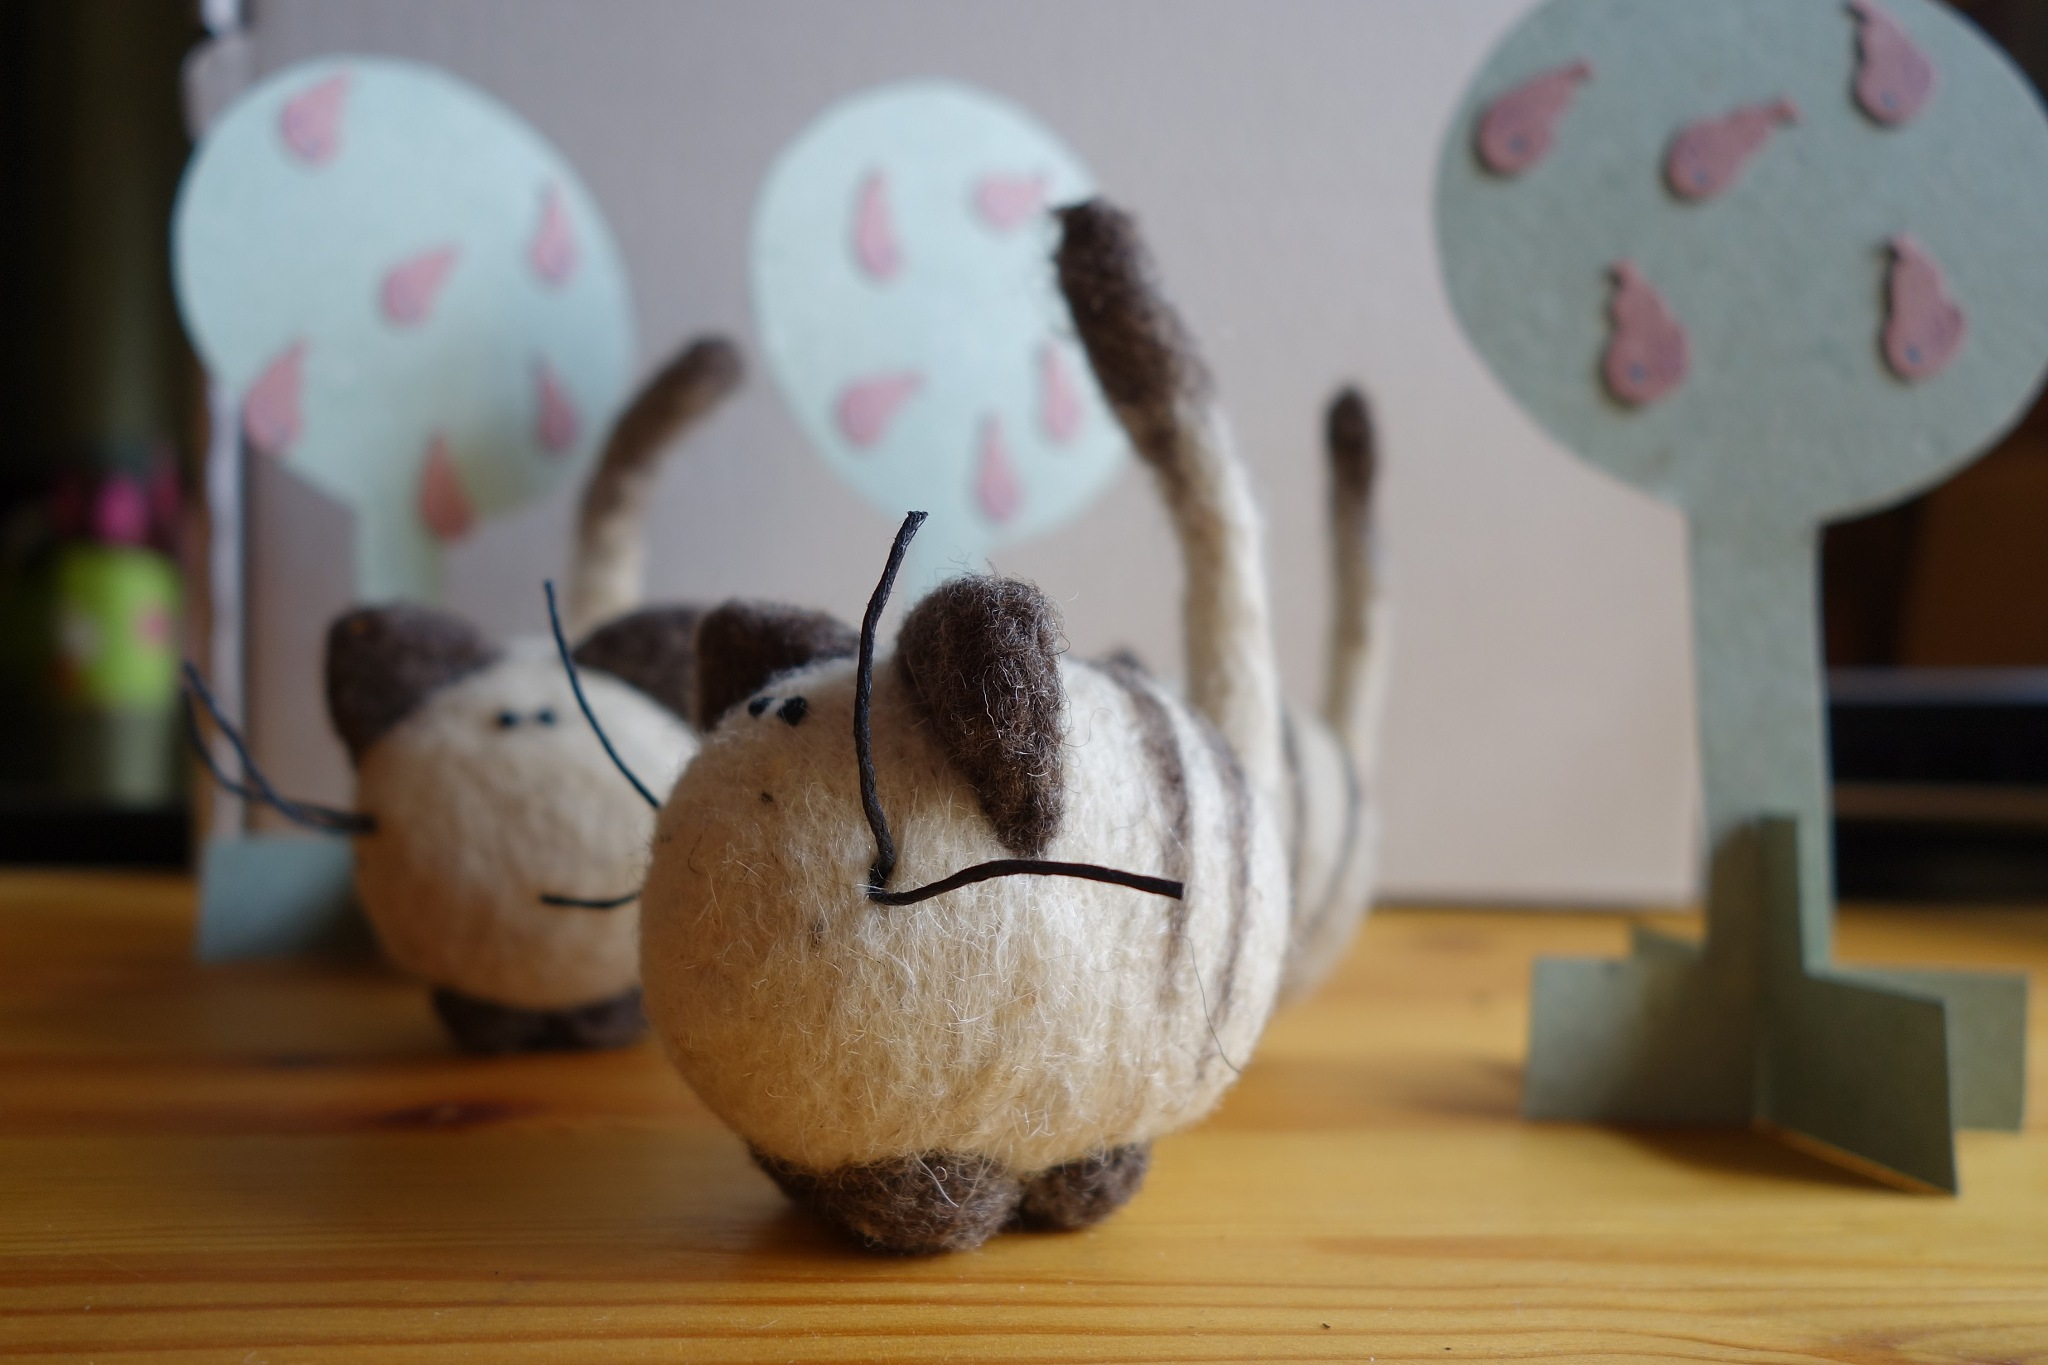 The woolen cats Roonya are walking among pears by Roonya